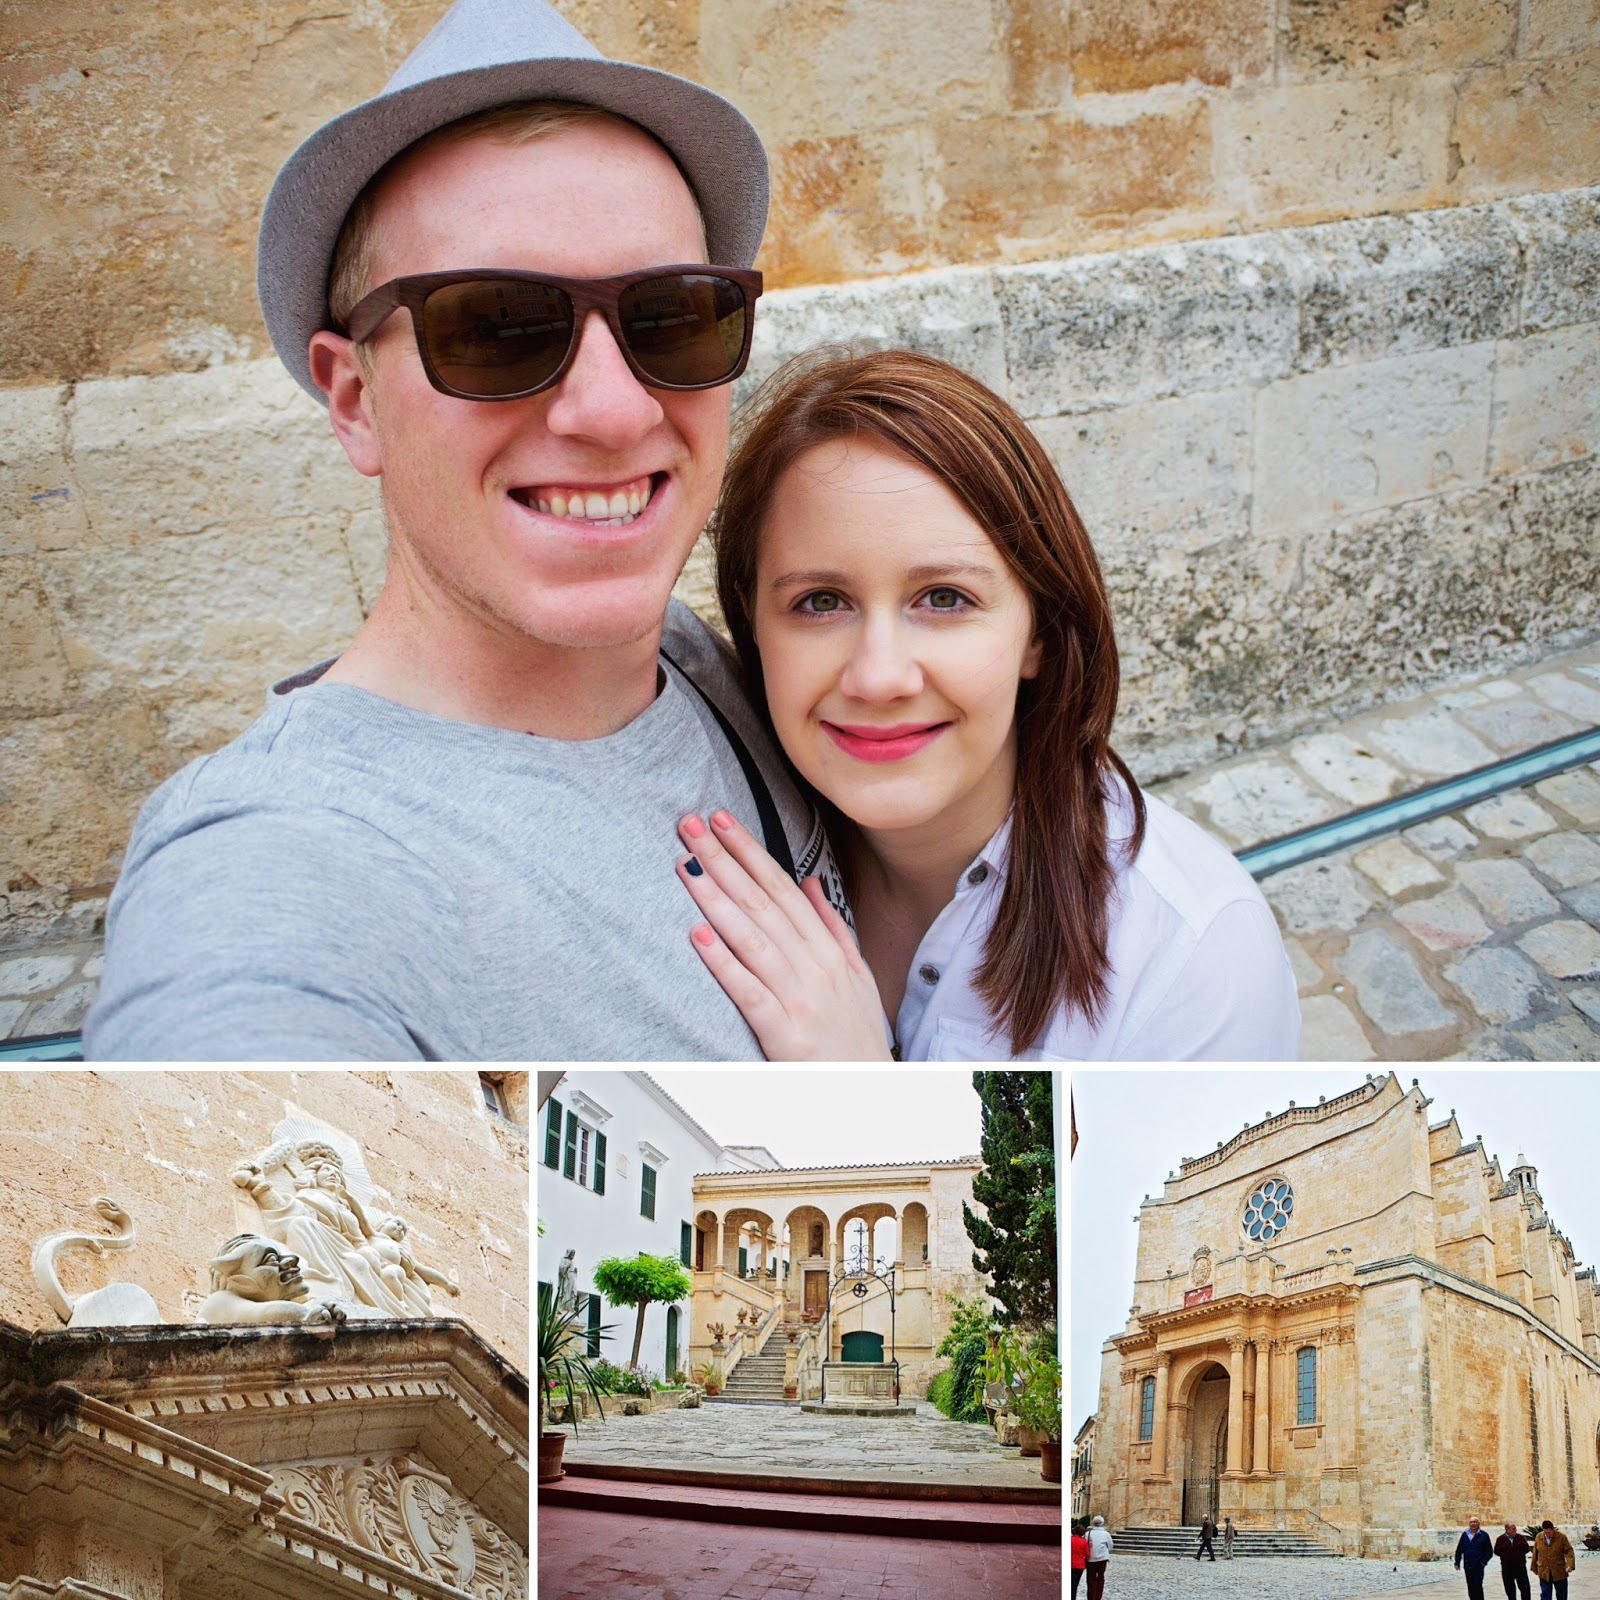 A montage of photos from the old town in Menorca